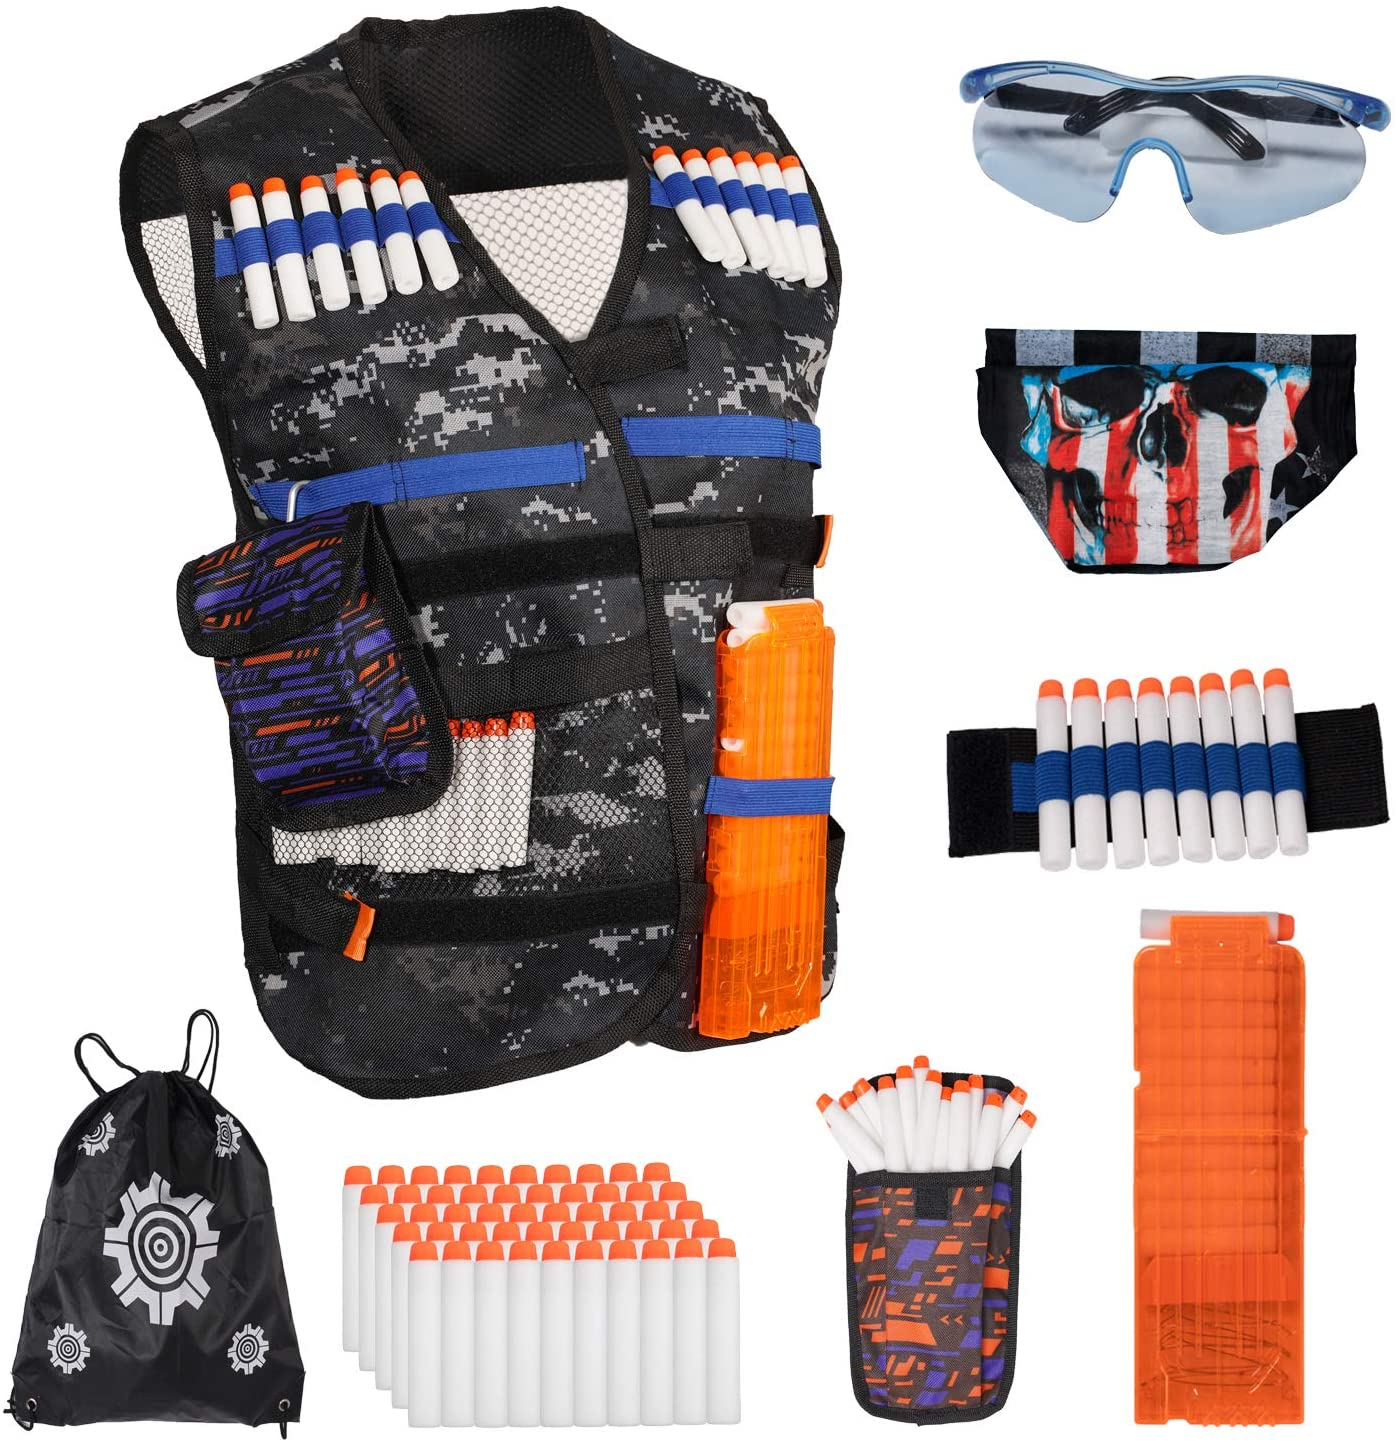 Vinciph Tactical Jacket Vest Kit for Nerf Guns with Refill Darts Dart Pouch, 50 Luminous Bullets,Reload Clip Tactical Mask Wrist Band and Protective,Glasses Stem Toys Gift for 5-15 Year Old Boys